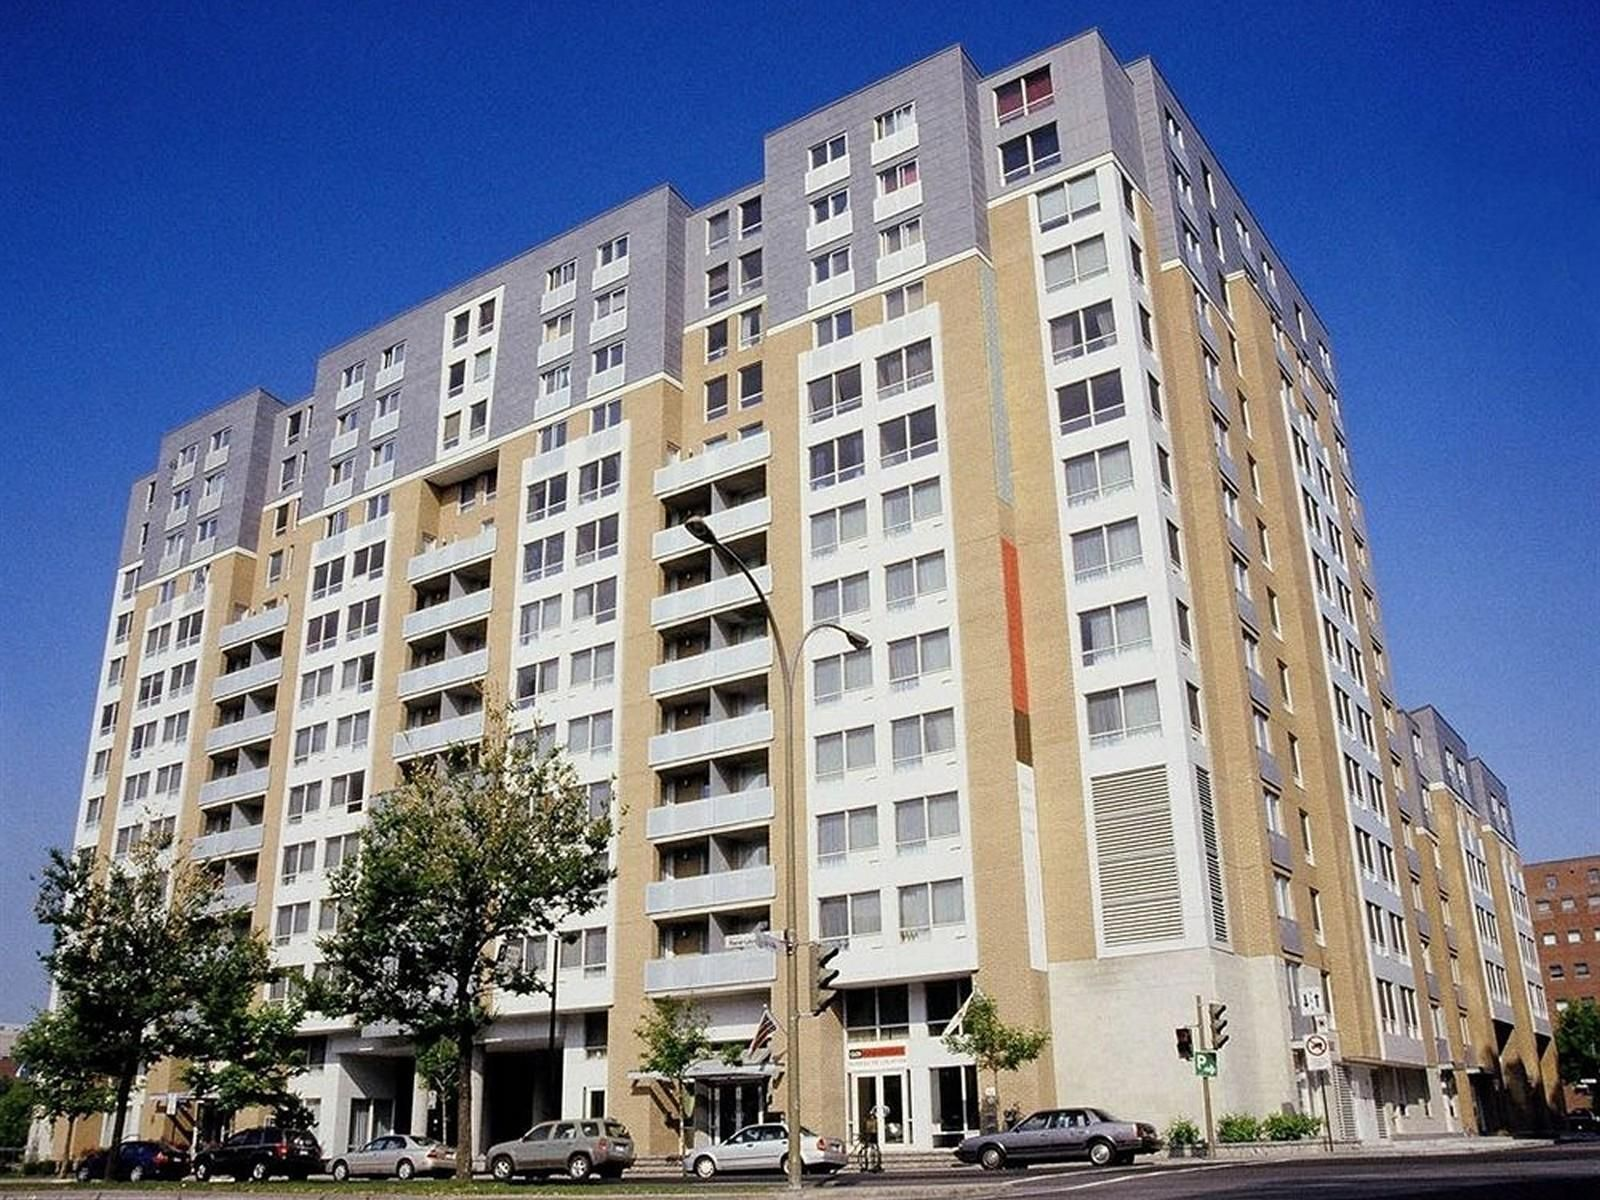 Montreal Qc Hotel Faubourg Centre Ville Downtown Canada North America Is Conveniently Located In